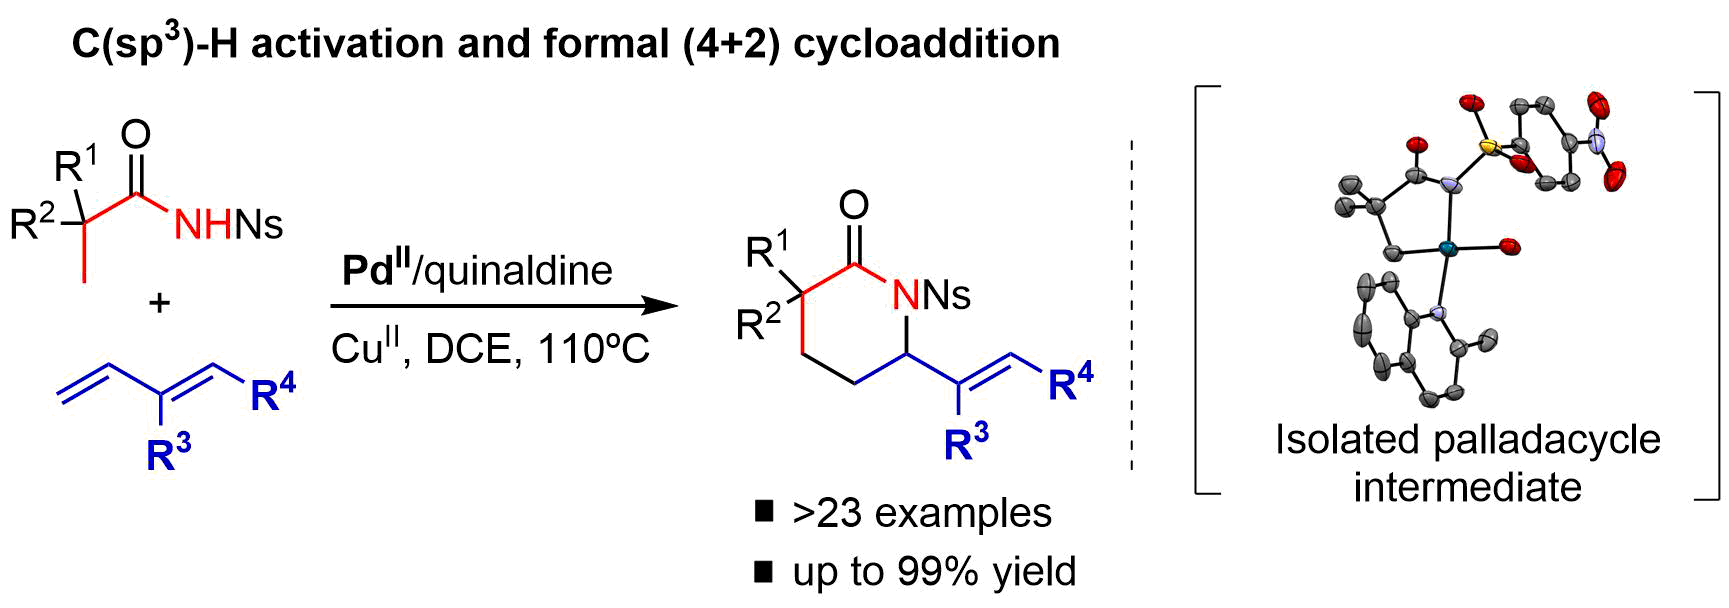 Palladium-catalyzed formal (4+2) cycloaddition between alkyl amides and dienes initiated by the activation of C(sp3)−H bonds